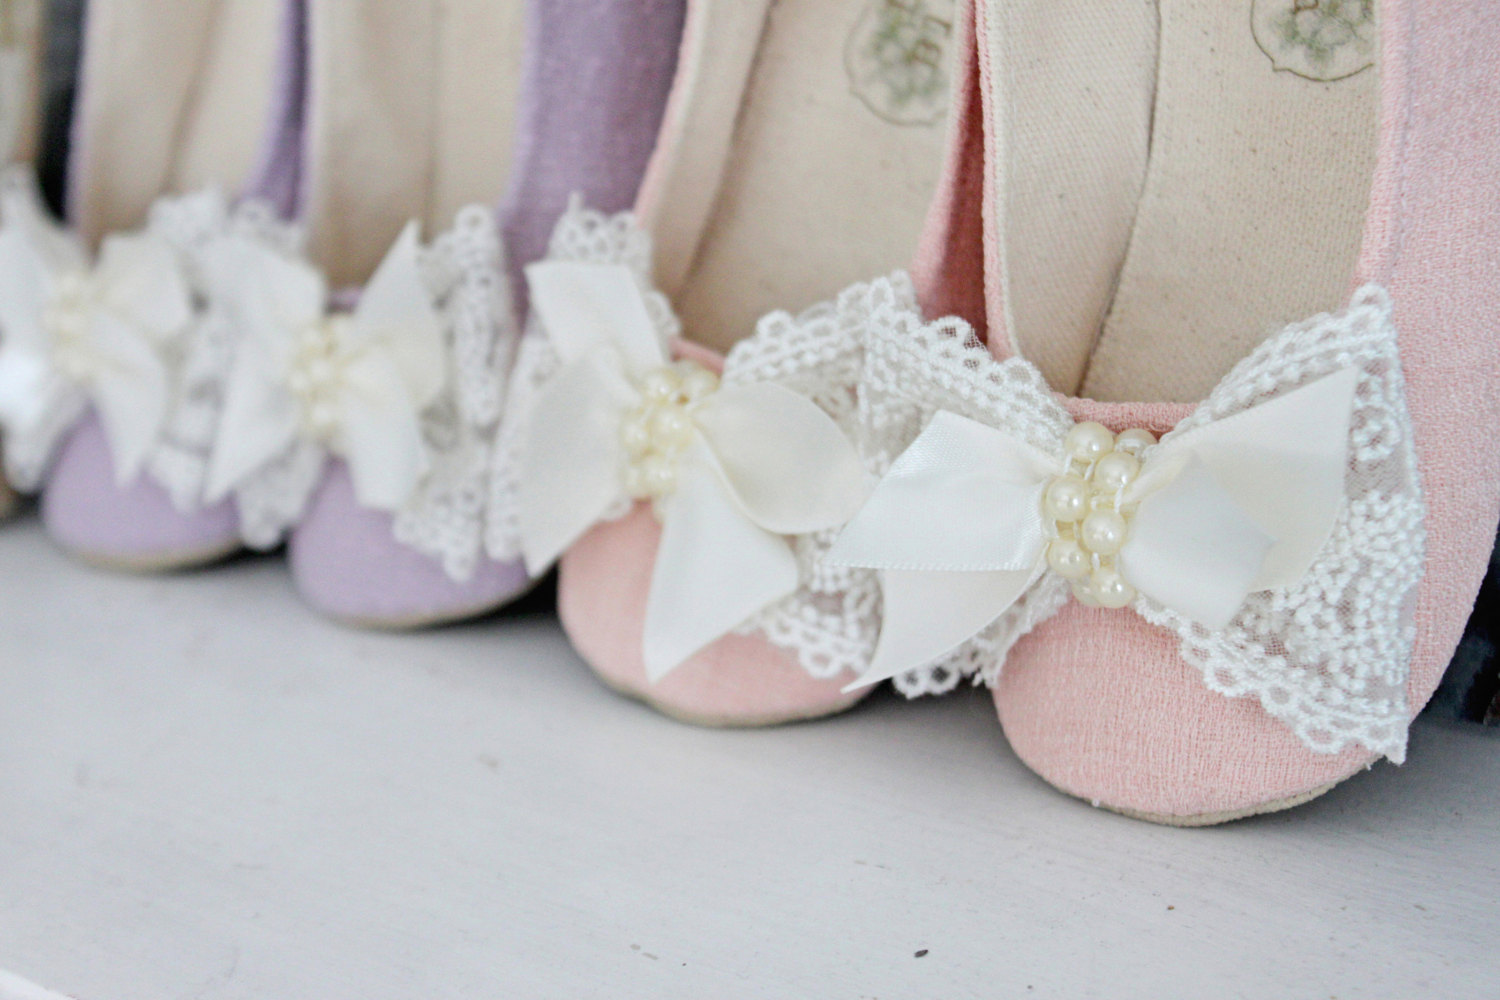 Handmade Flower Girl Shoes 12 Modern Stylish Designs